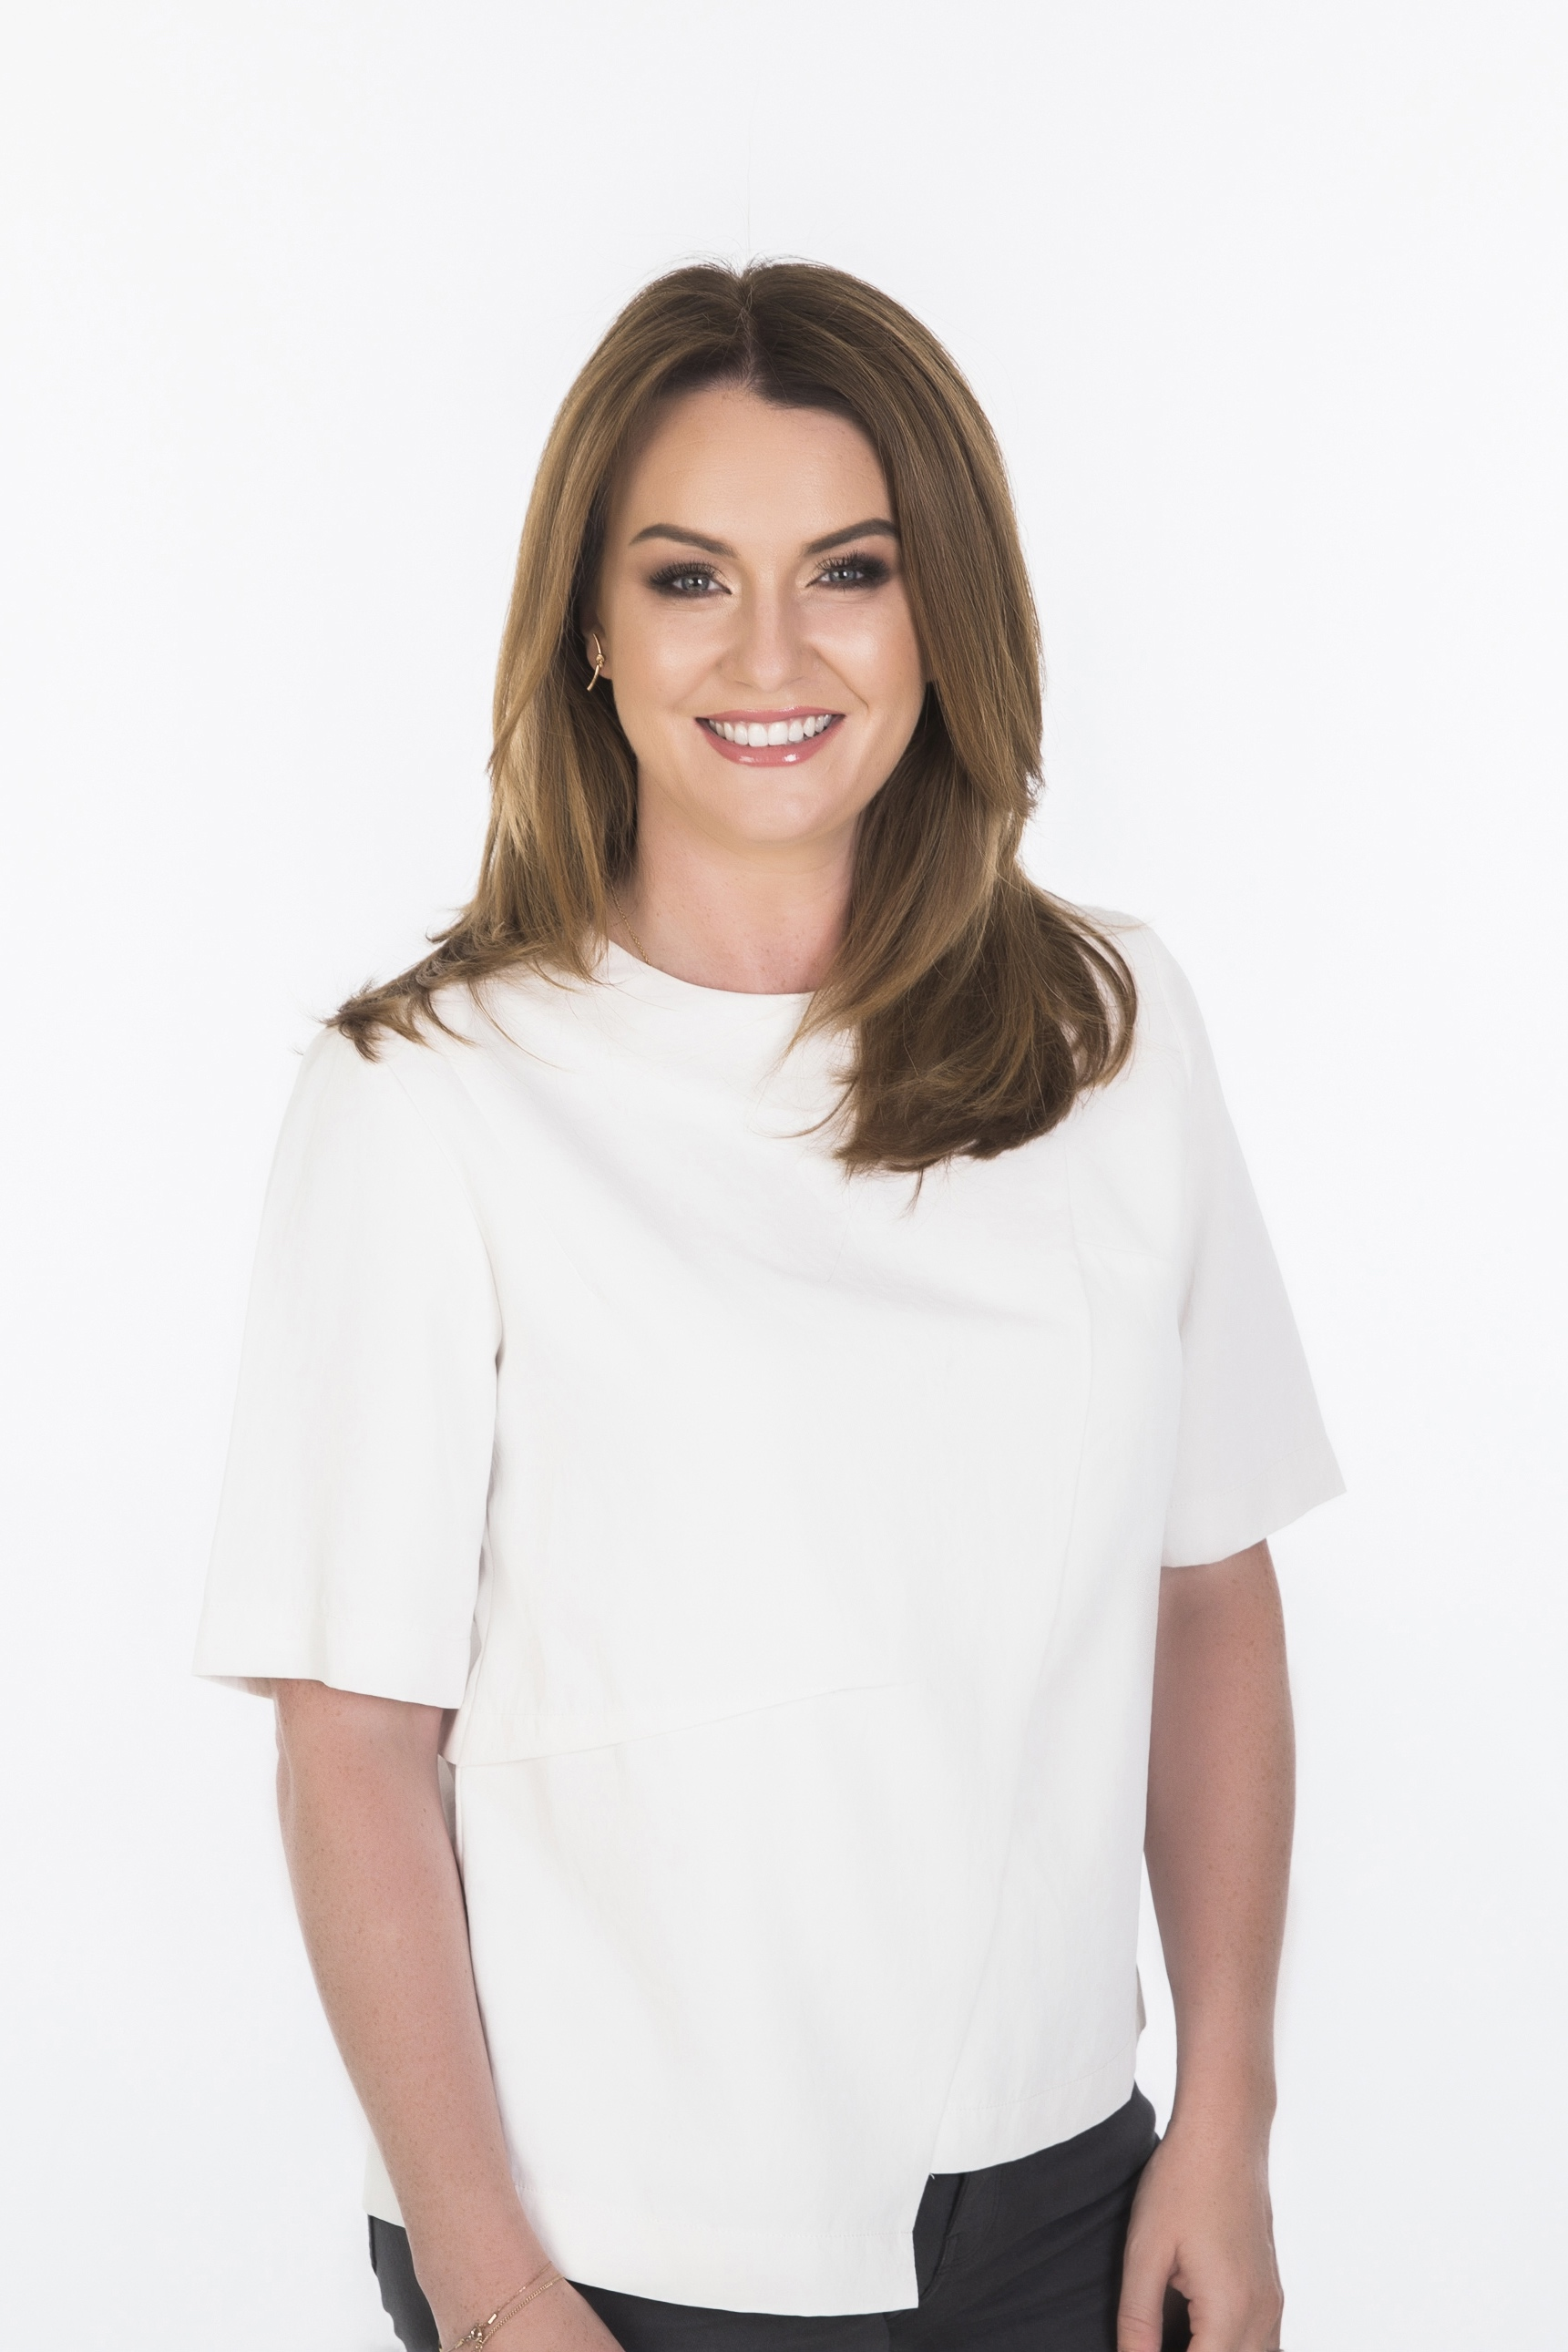 #MakeAFuss: 'I'm not a blogger, I'm just a woman with hair' - Mairead Farrell on her beauty venture